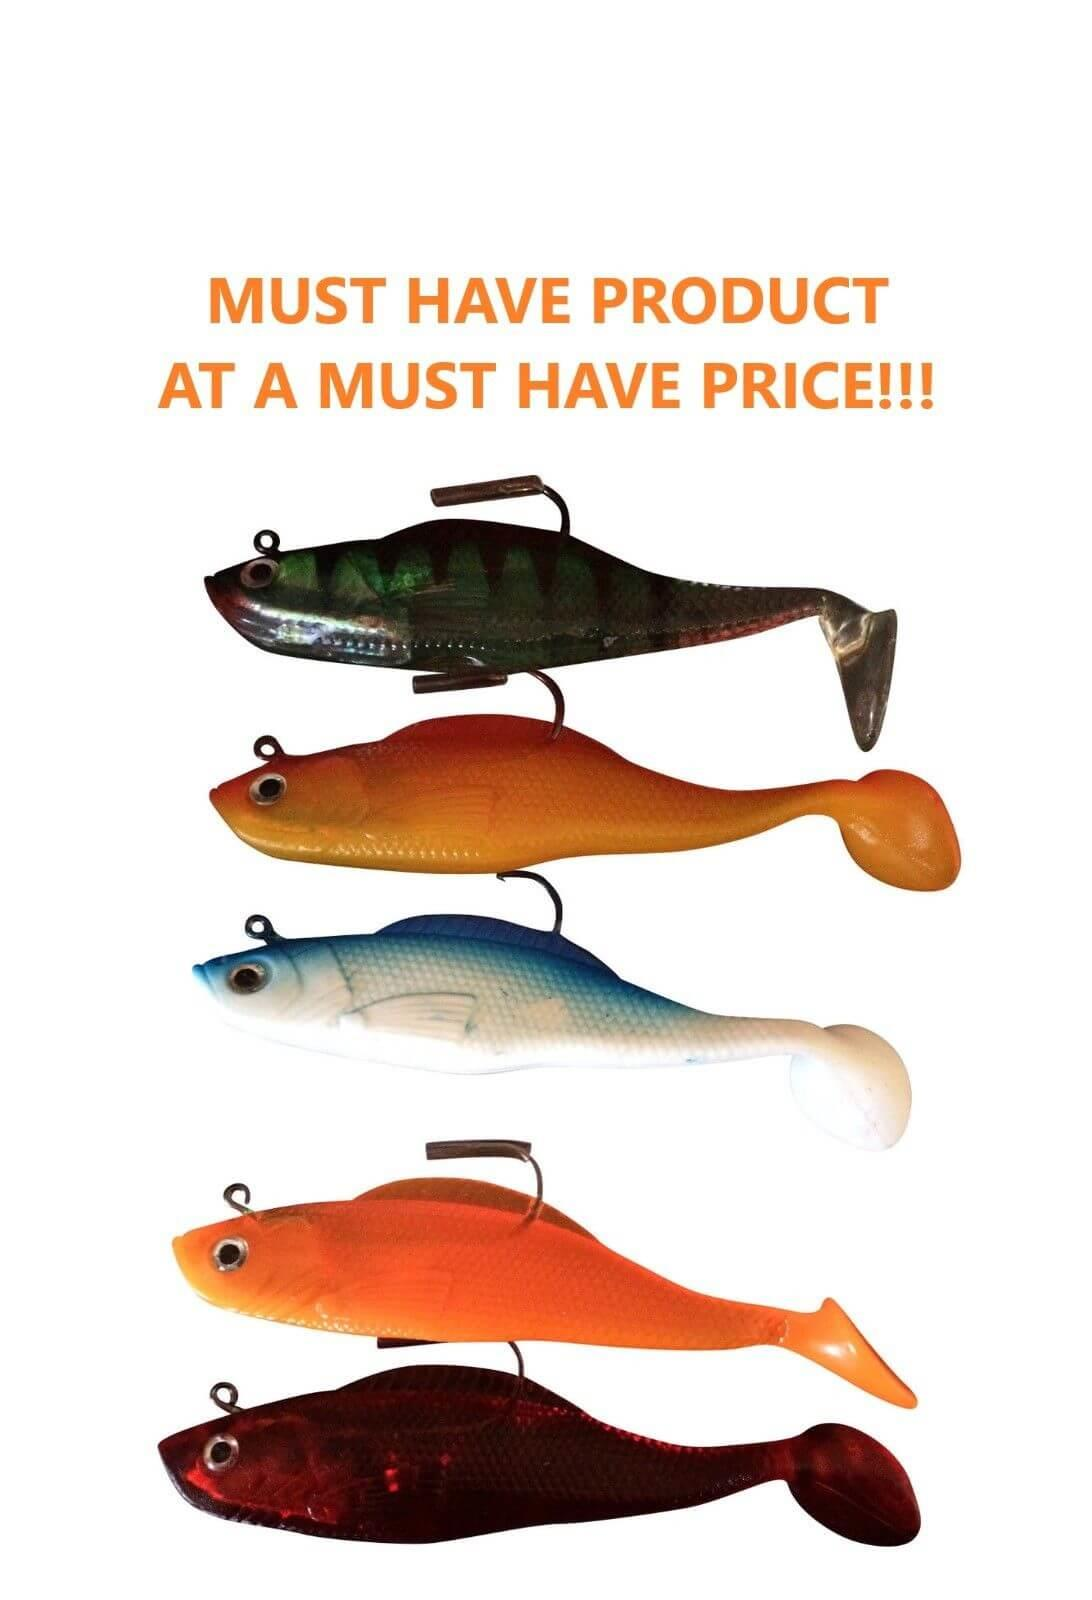 Feared by fish Super Solid Shad  Shads 5 43gr  Multi Pack of 5 Lures